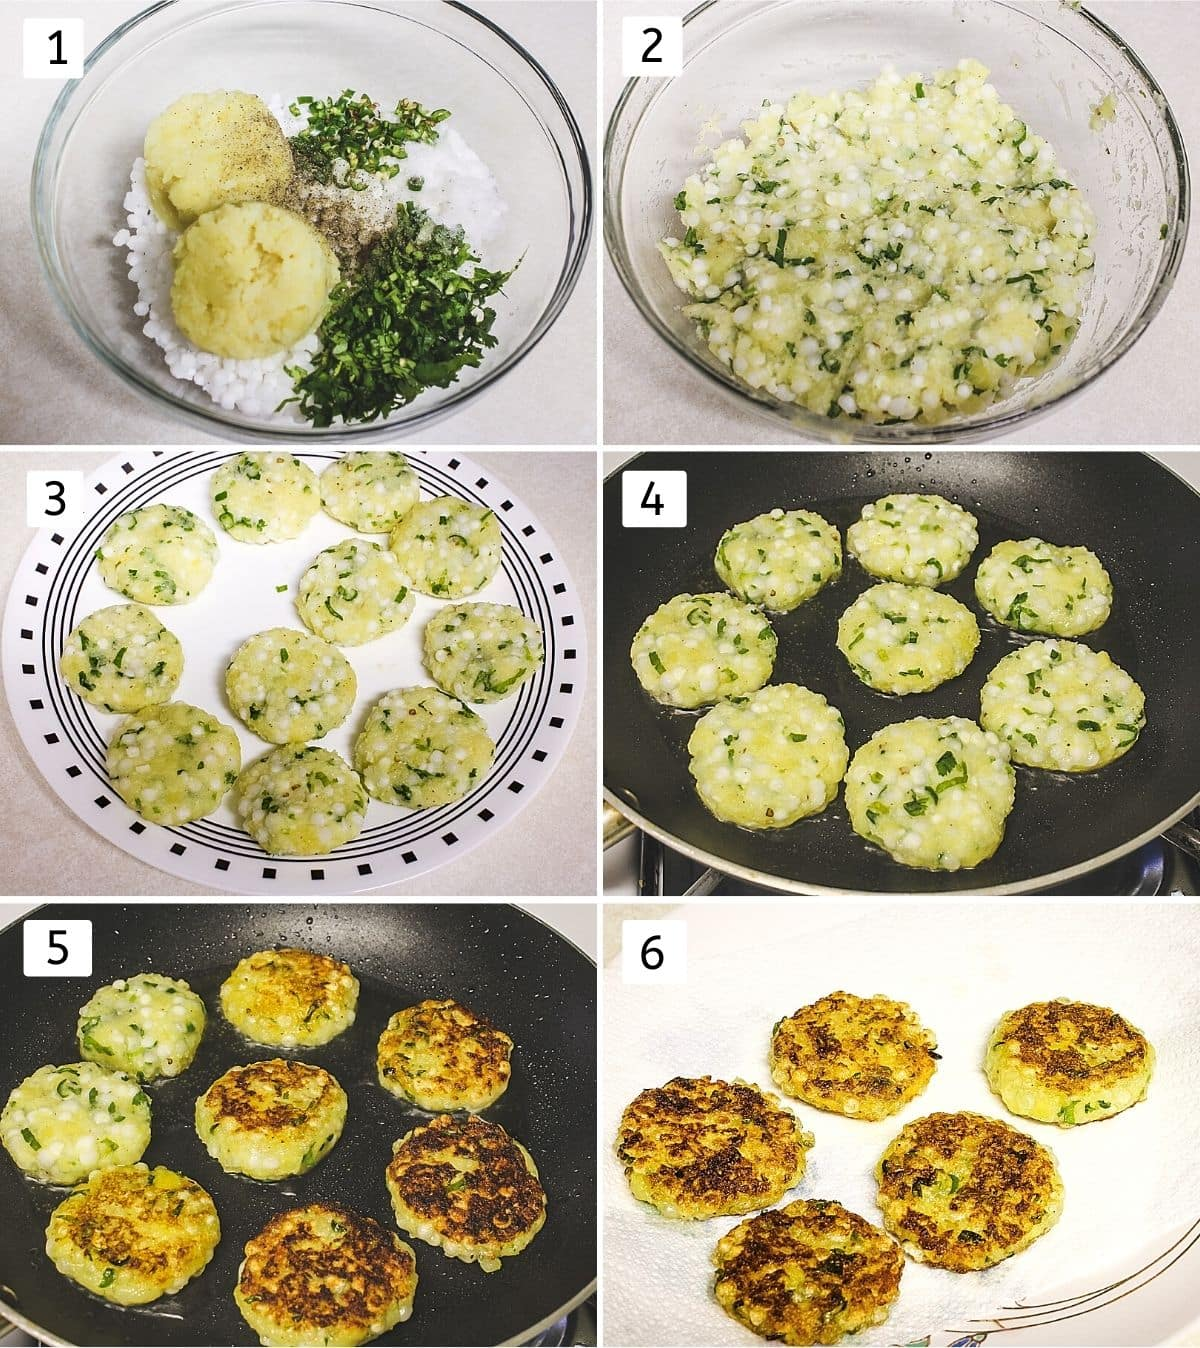 collage of 6 steps showing tikki ingredients in a bowl, mixed to a dough, shaped tikkis, frying, flipped, removed to a plate